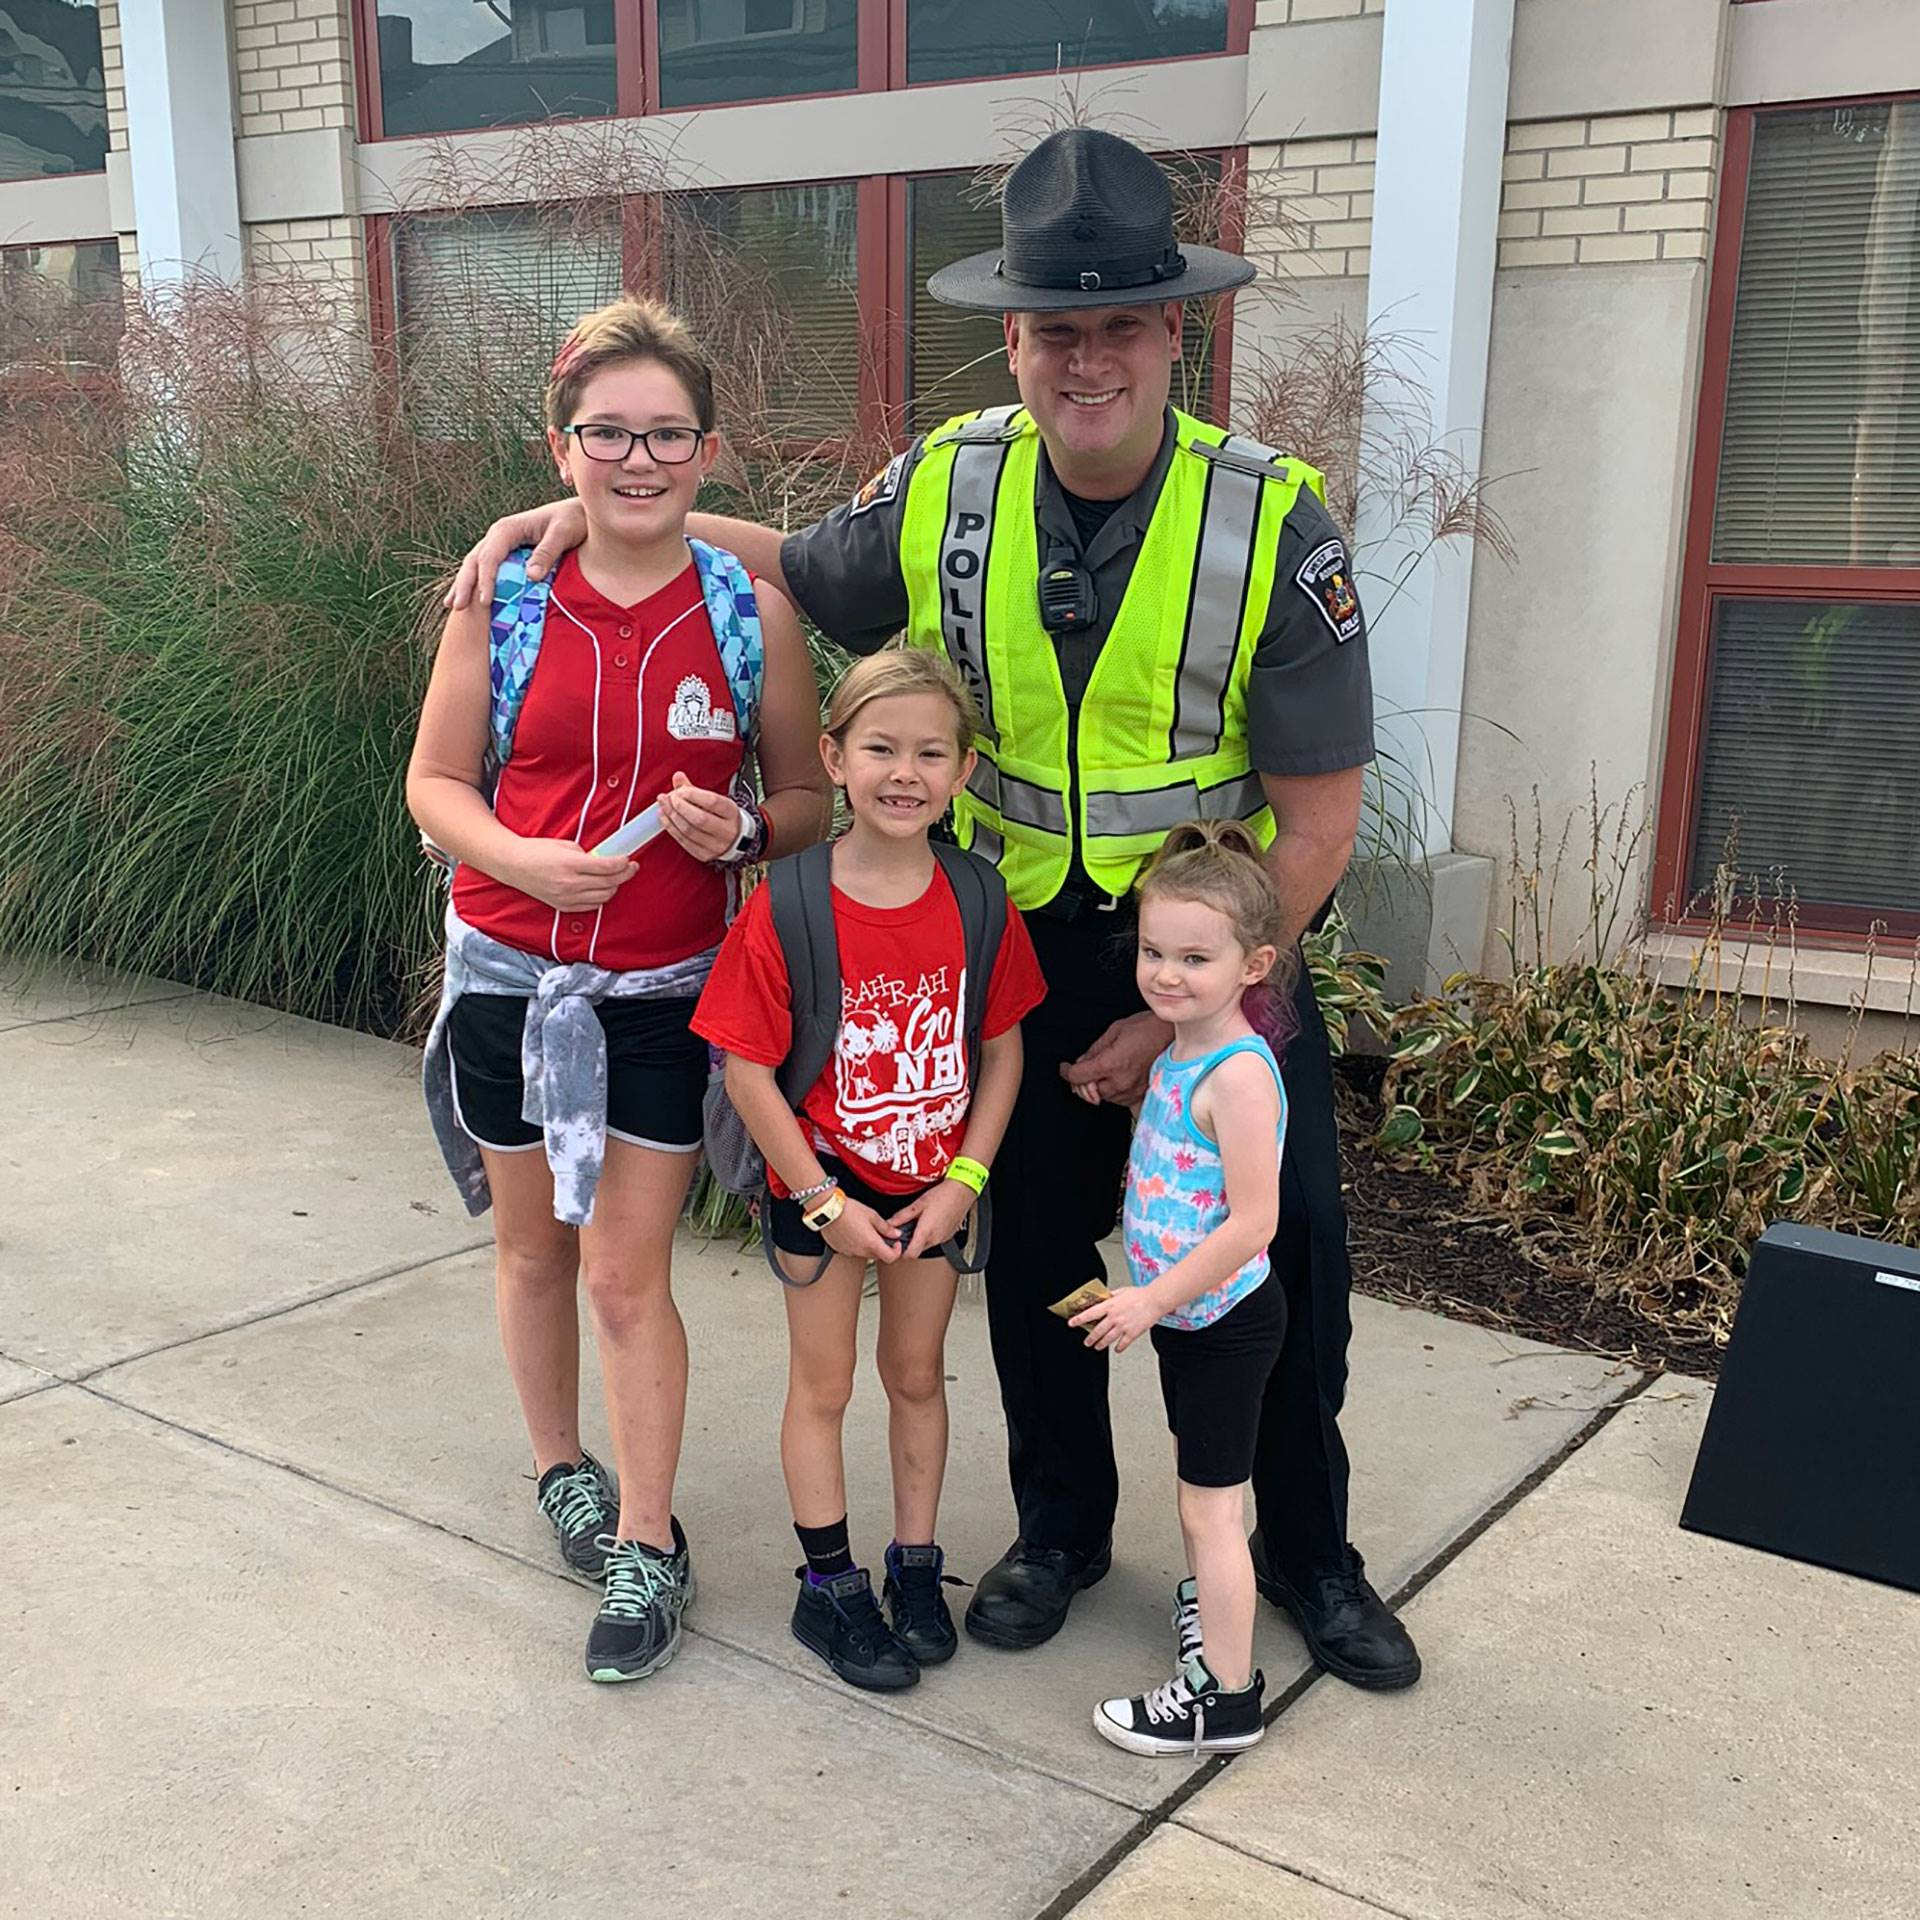 A West View police officer posing with his three daughters on International Walk to School Day on Oc